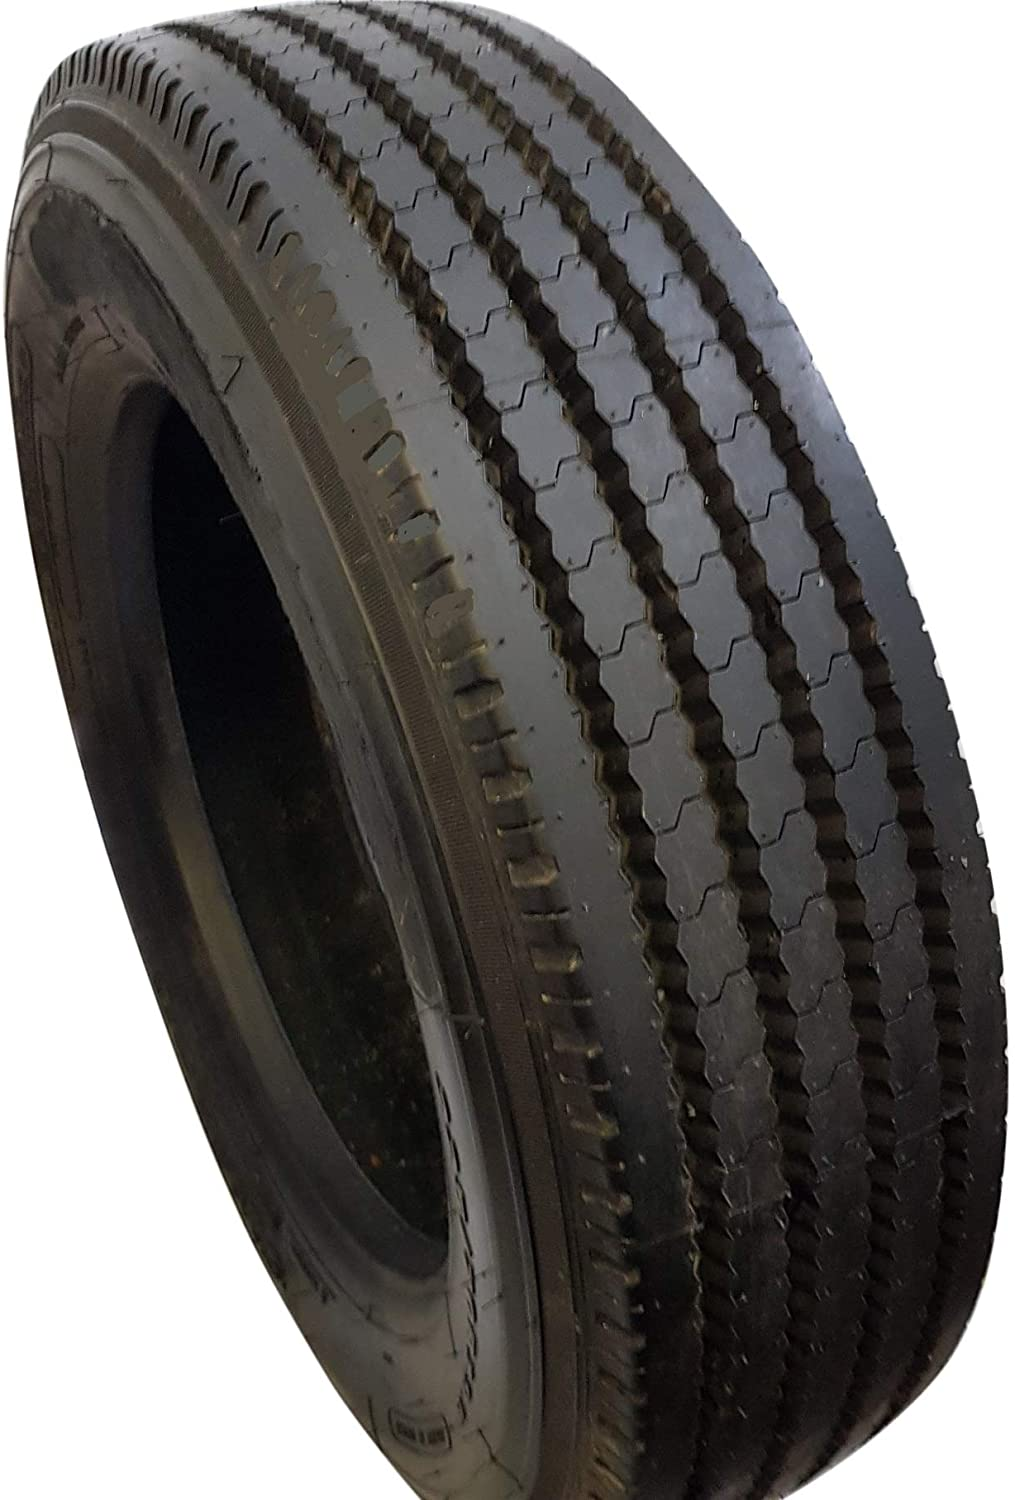 (1-TIRE) 245/70R19.5 M/16 NEW ROAD CREW F820 STEER ALL POSITIONS TIRES 16 PLY 24570195